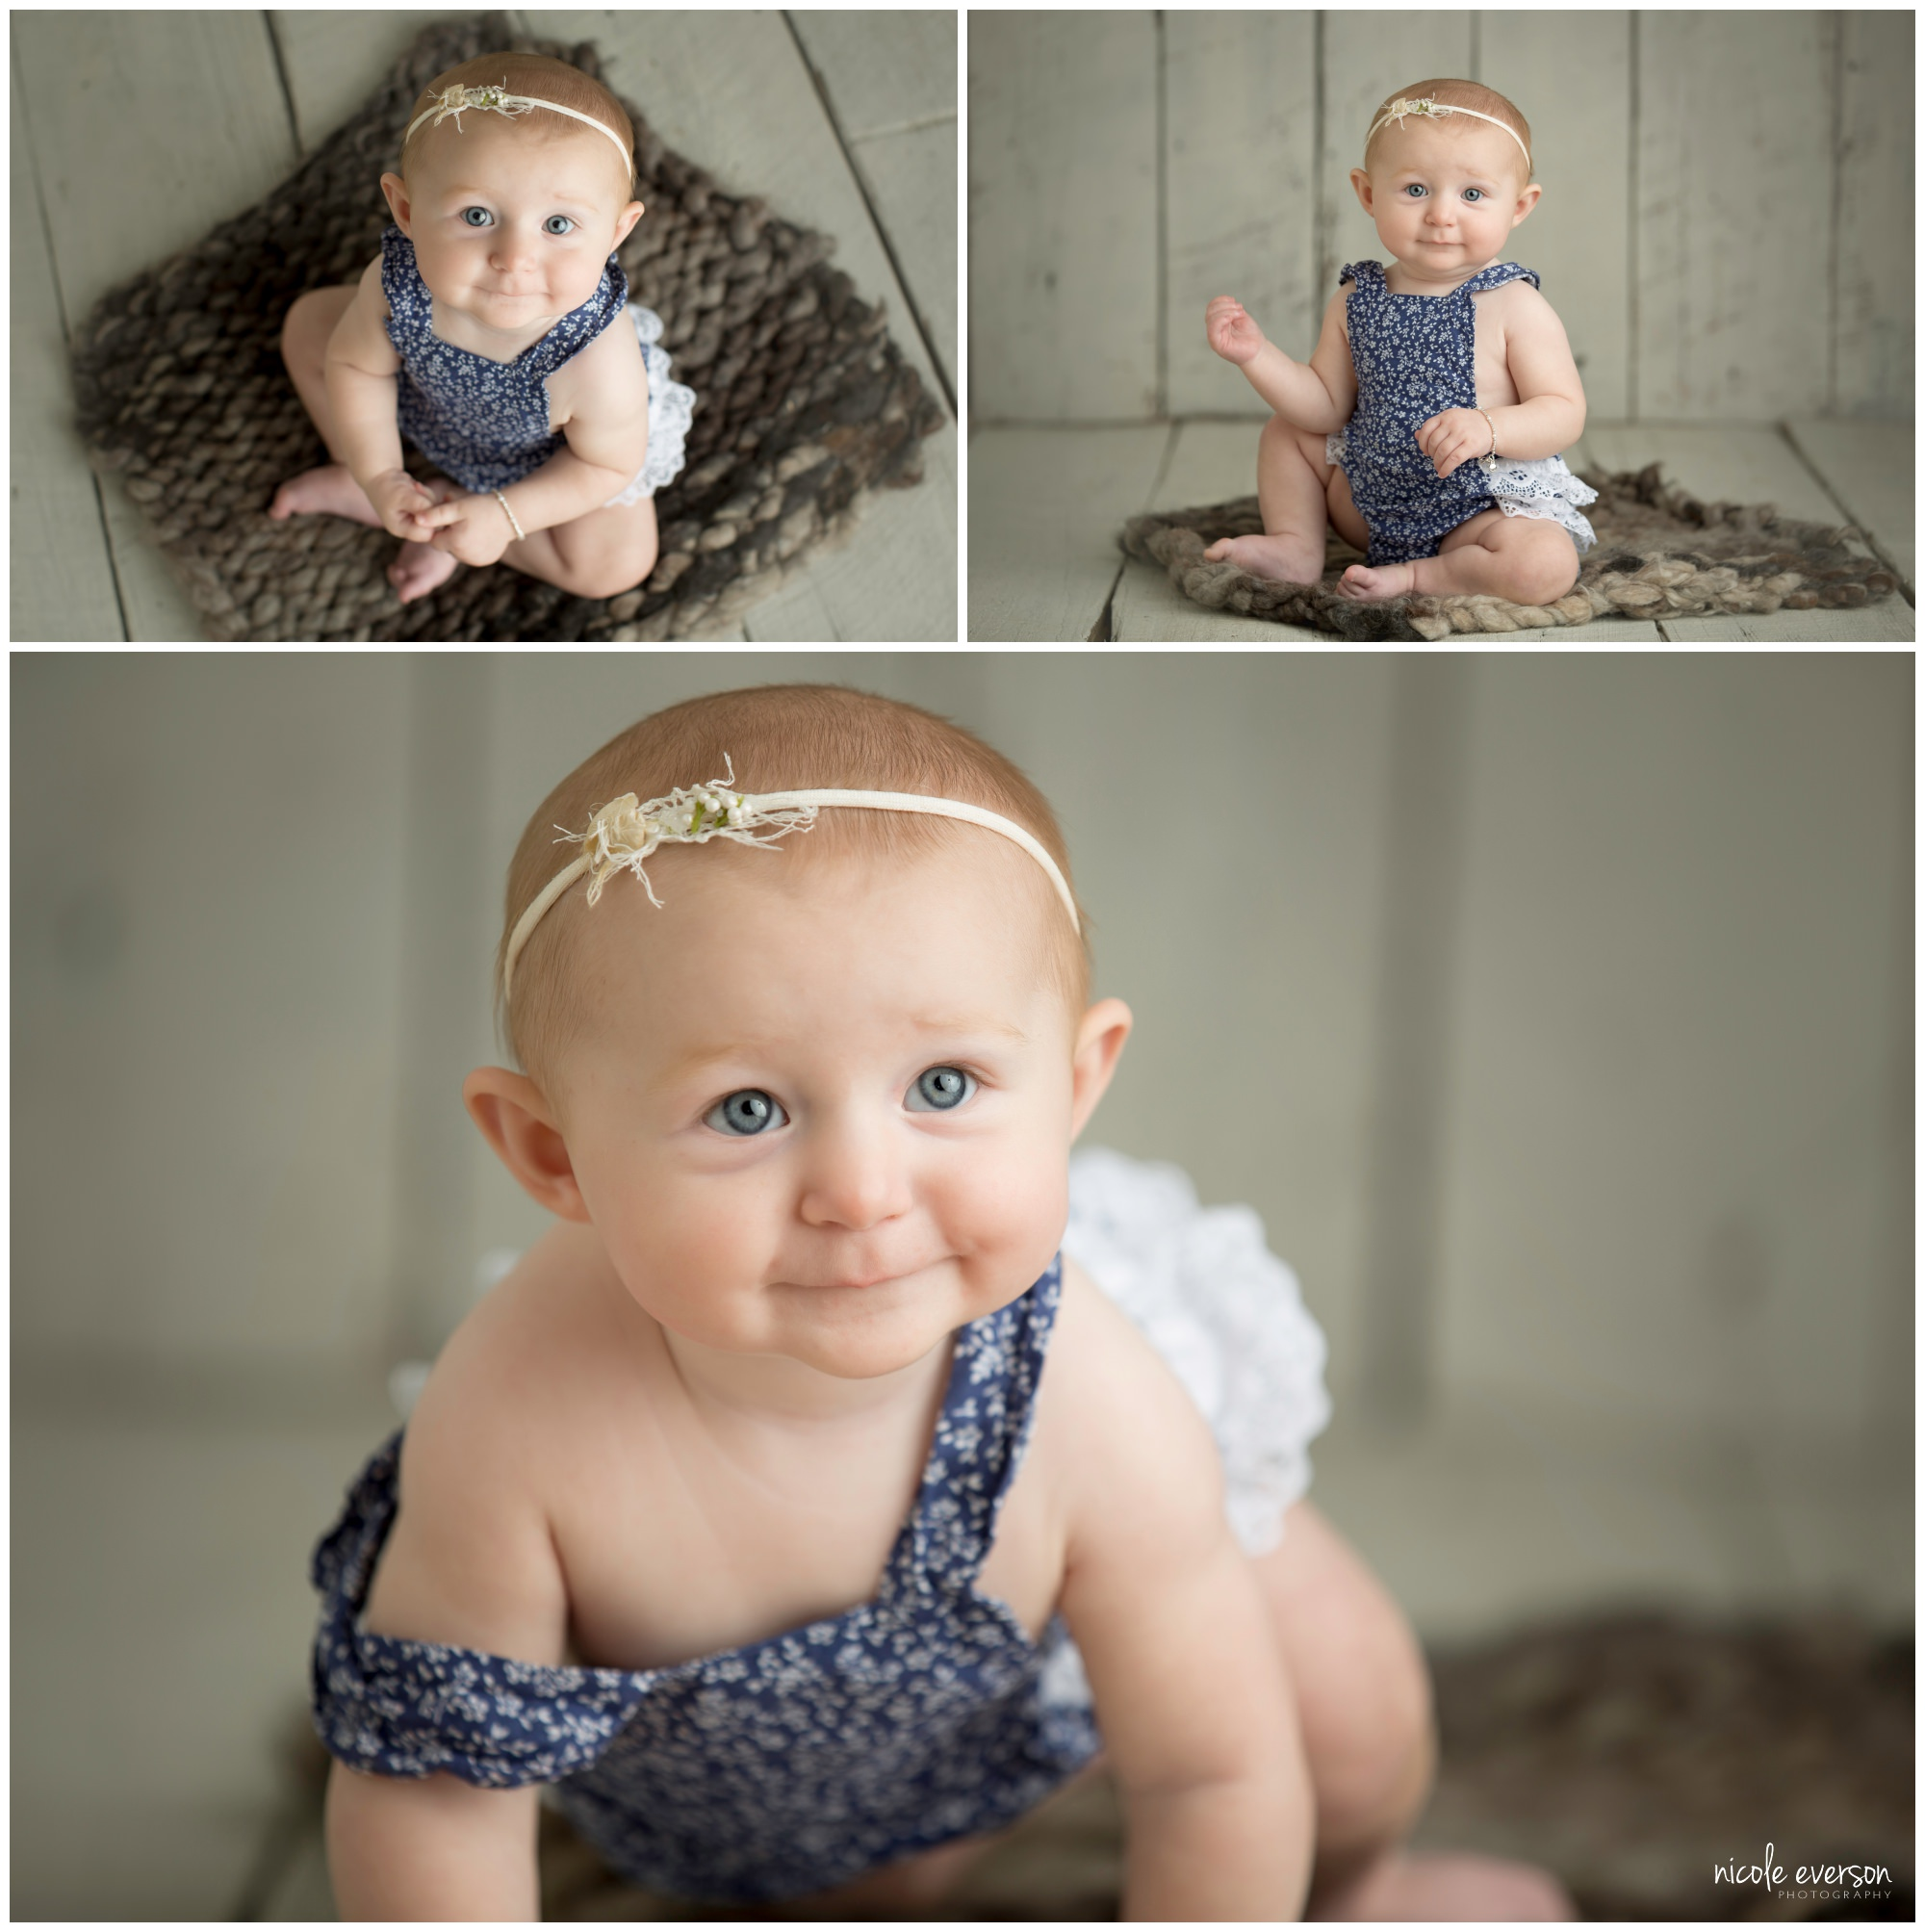 Florida Baby Photographer | Nicole Everson Photography